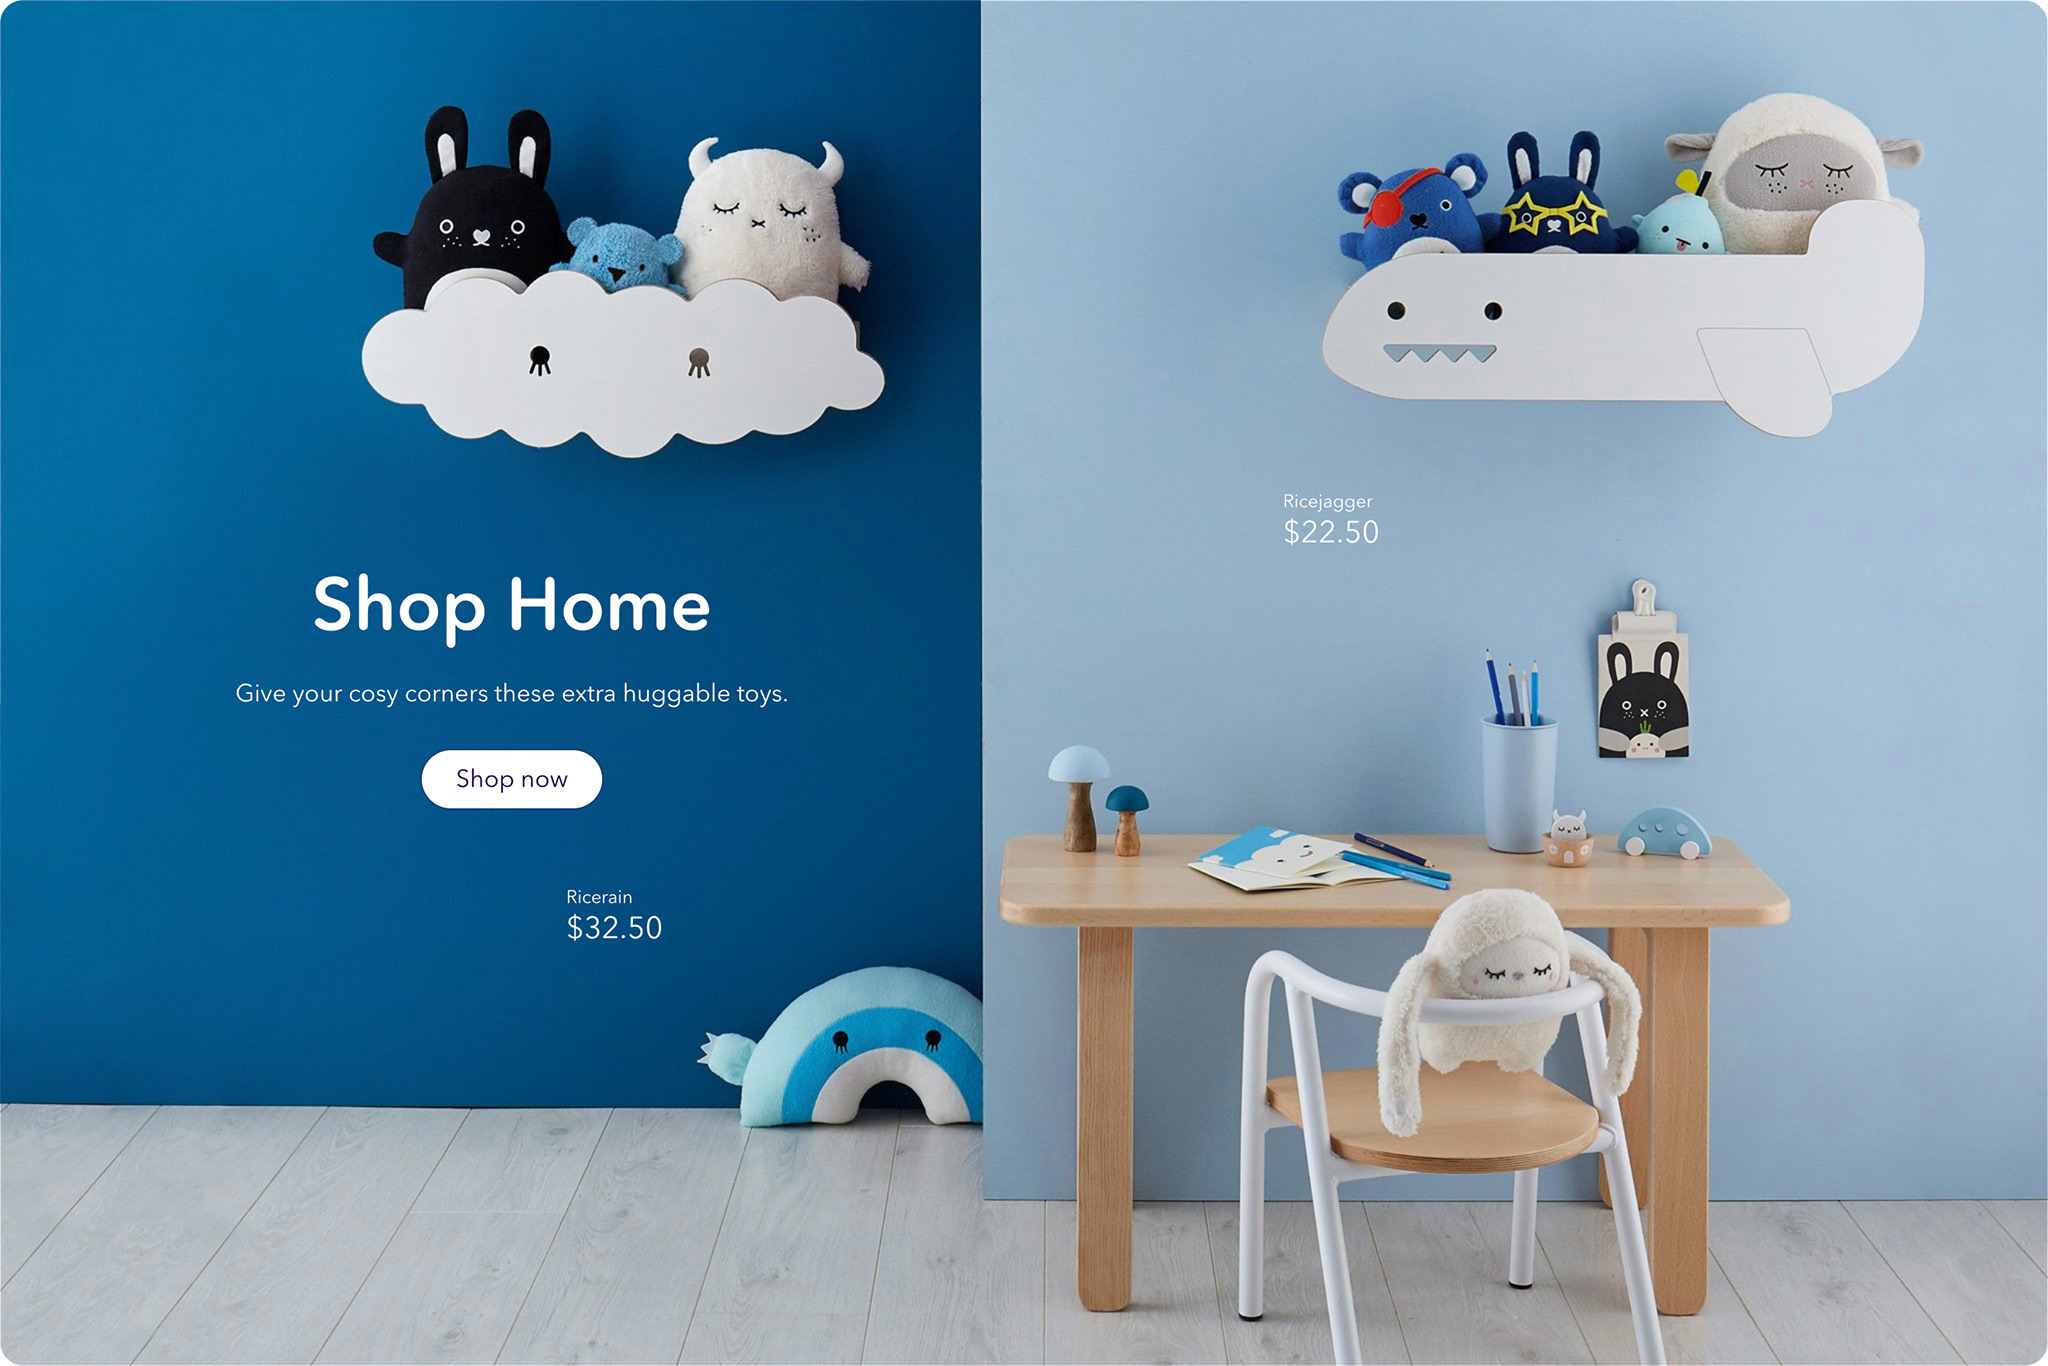 Boost Shopify theme support